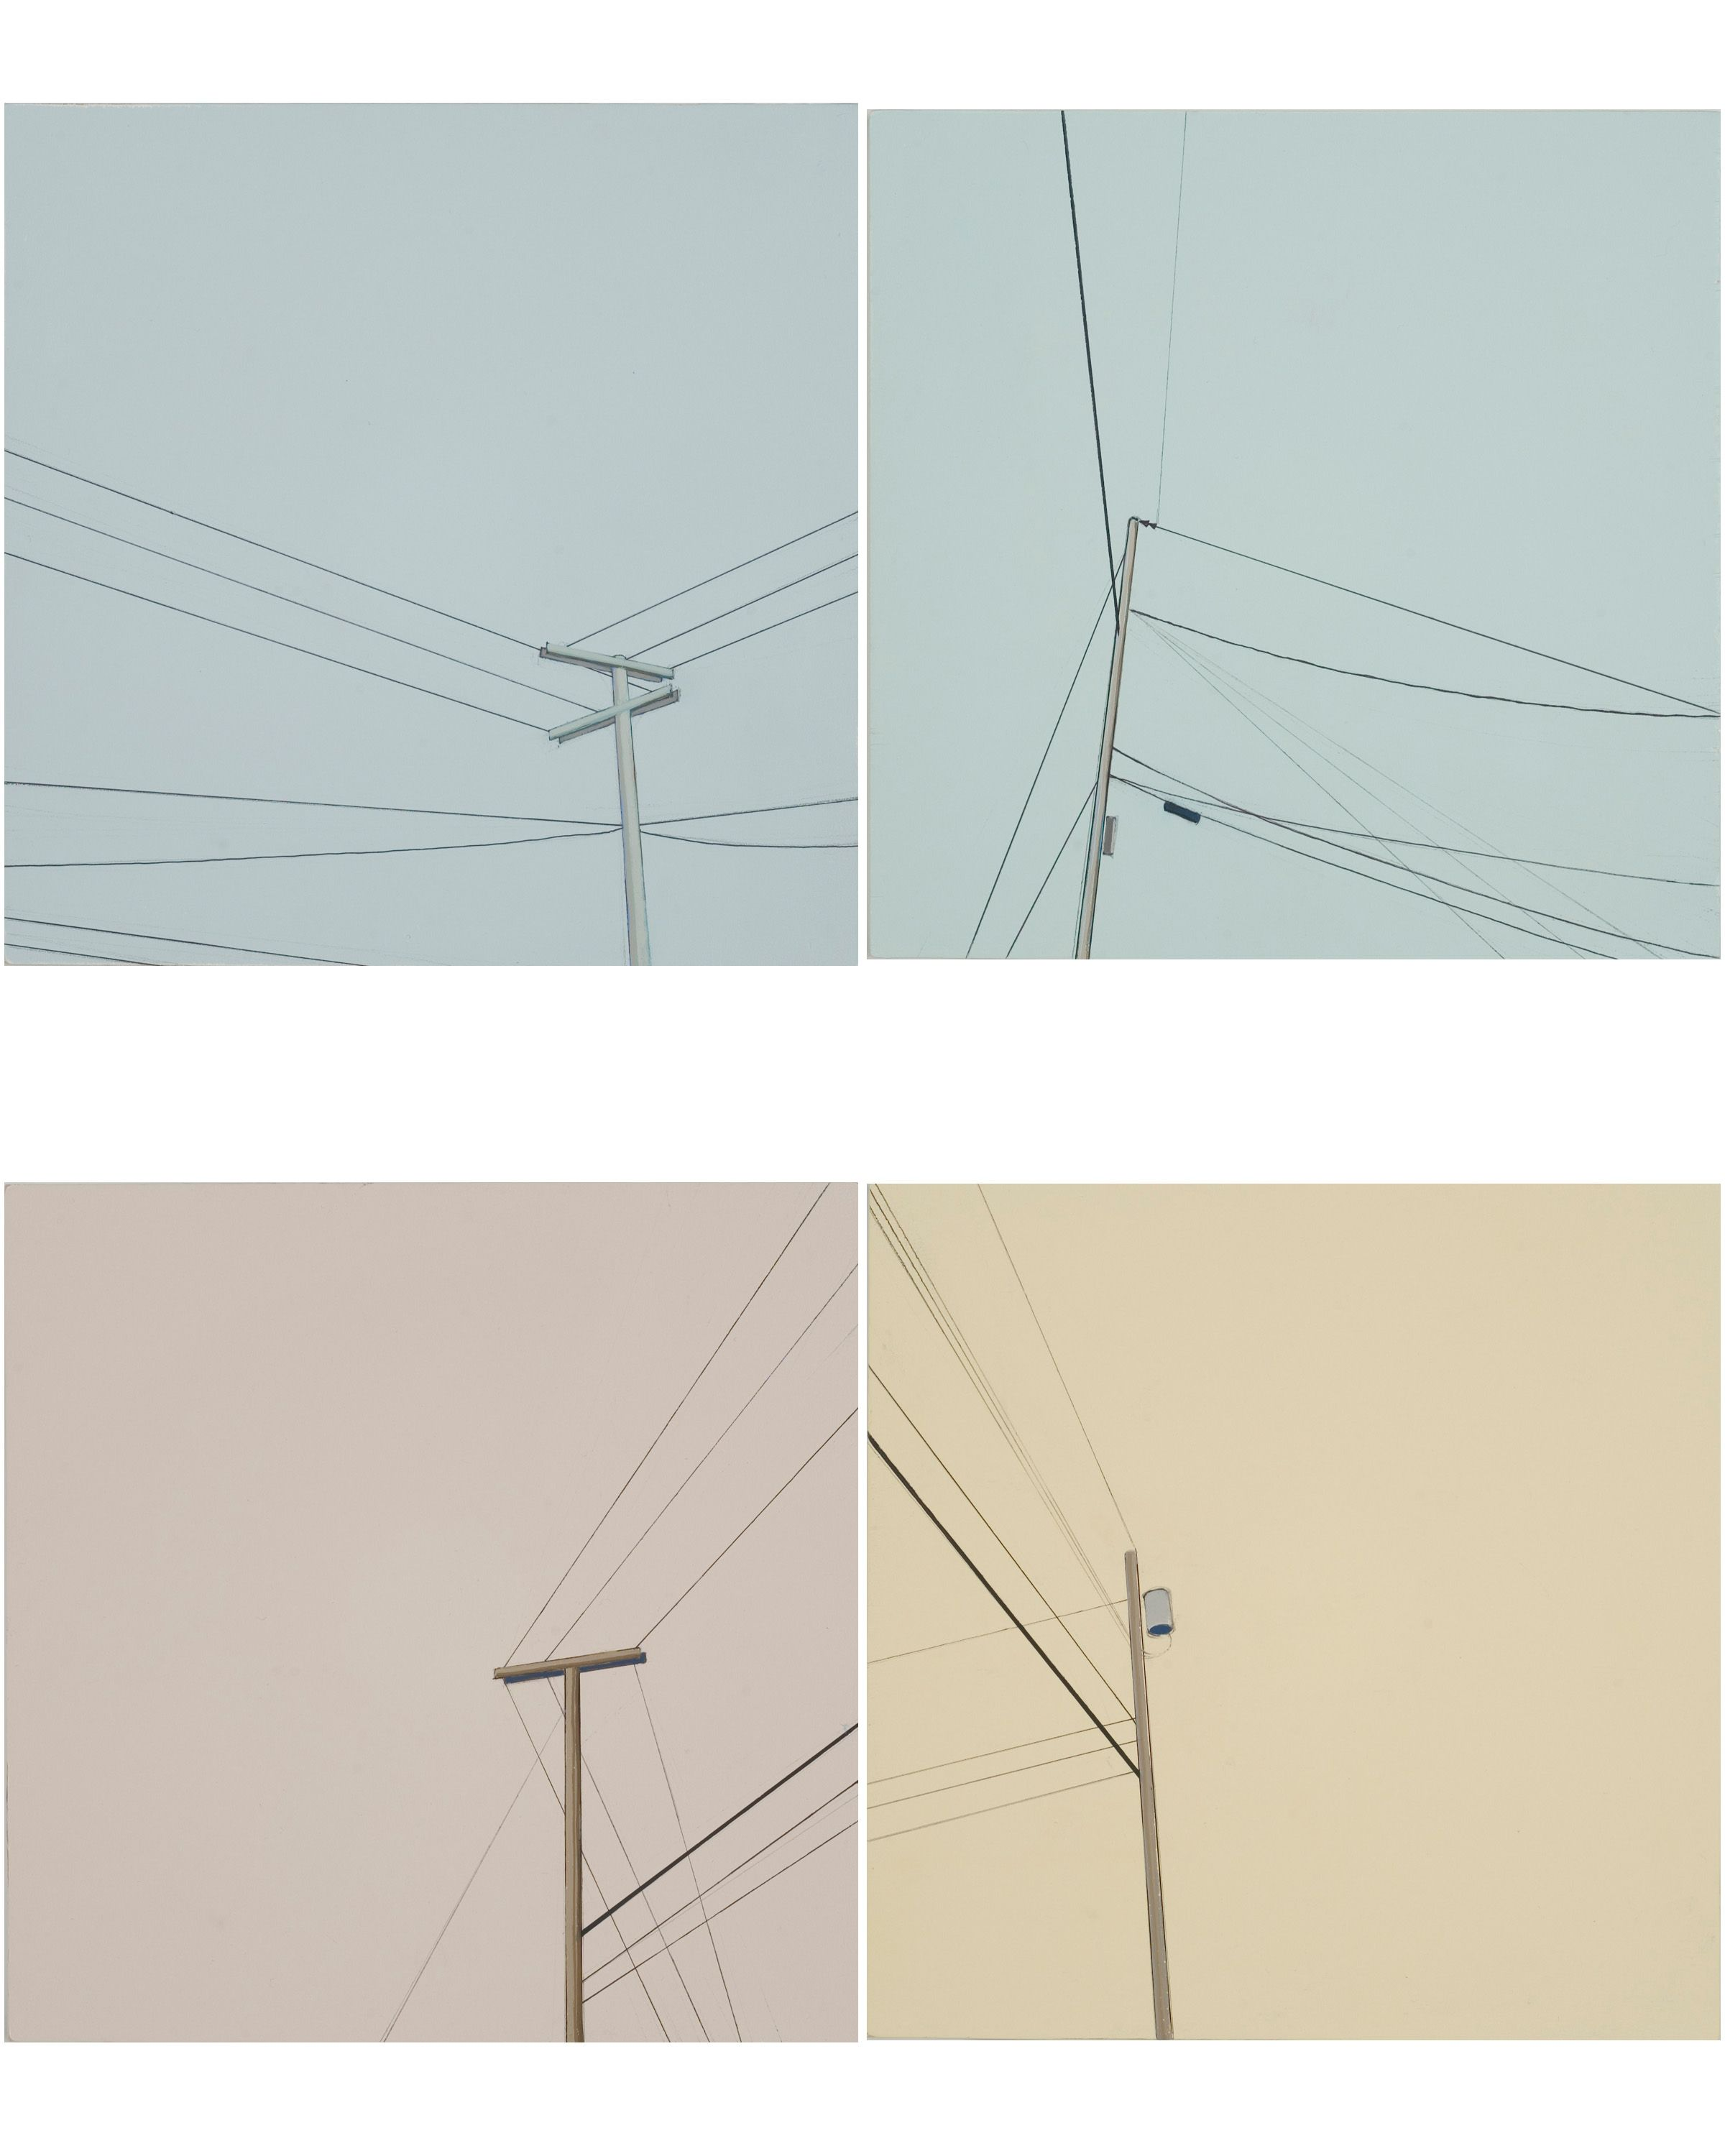 A series of four utility poles